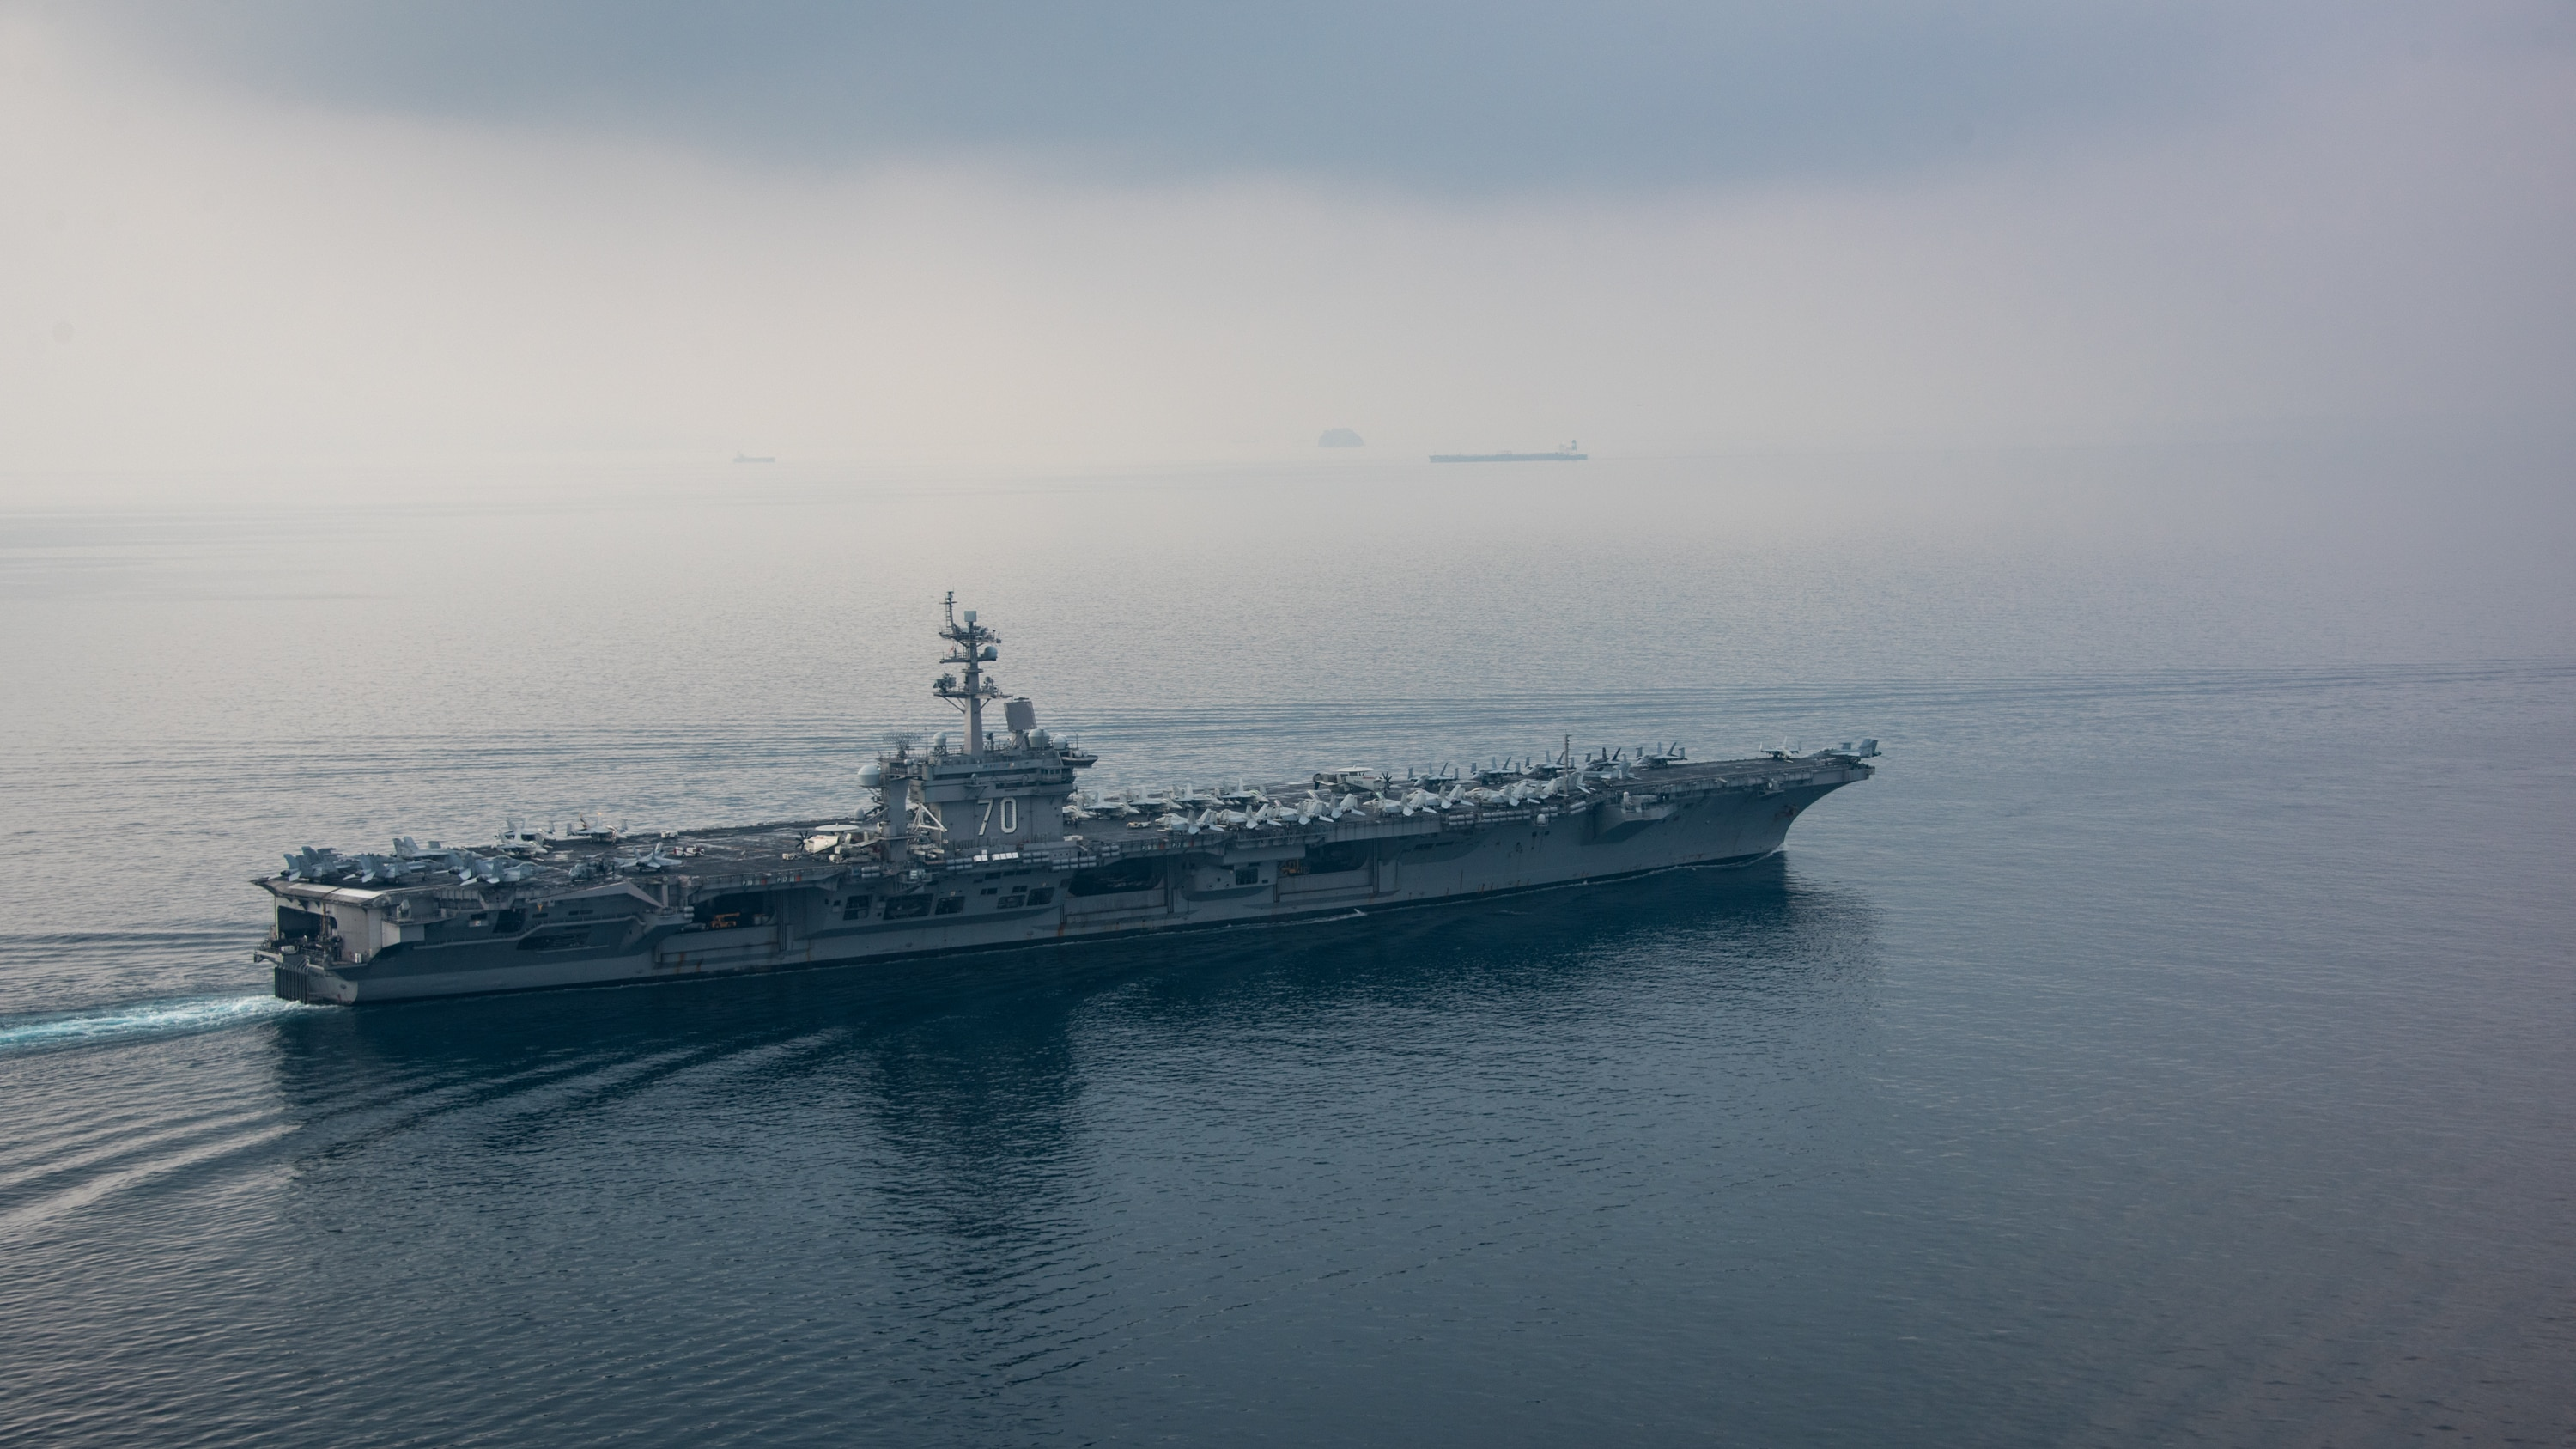 Carried away: The inside story of how the Carl Vinson's canceled port visit sparked a global crisis